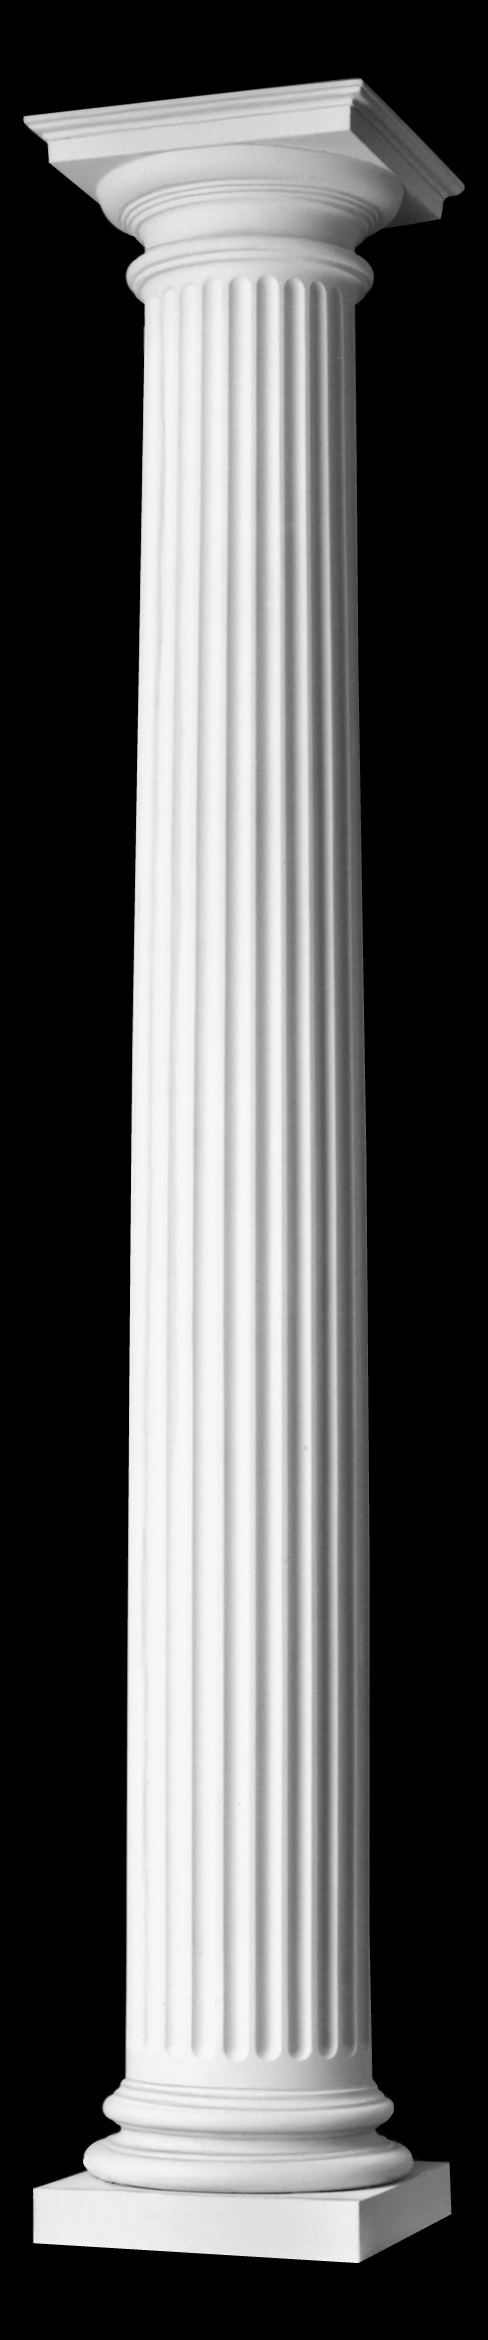 Architectural Column Base : Fluted wood column roman doric capital ionic attic base